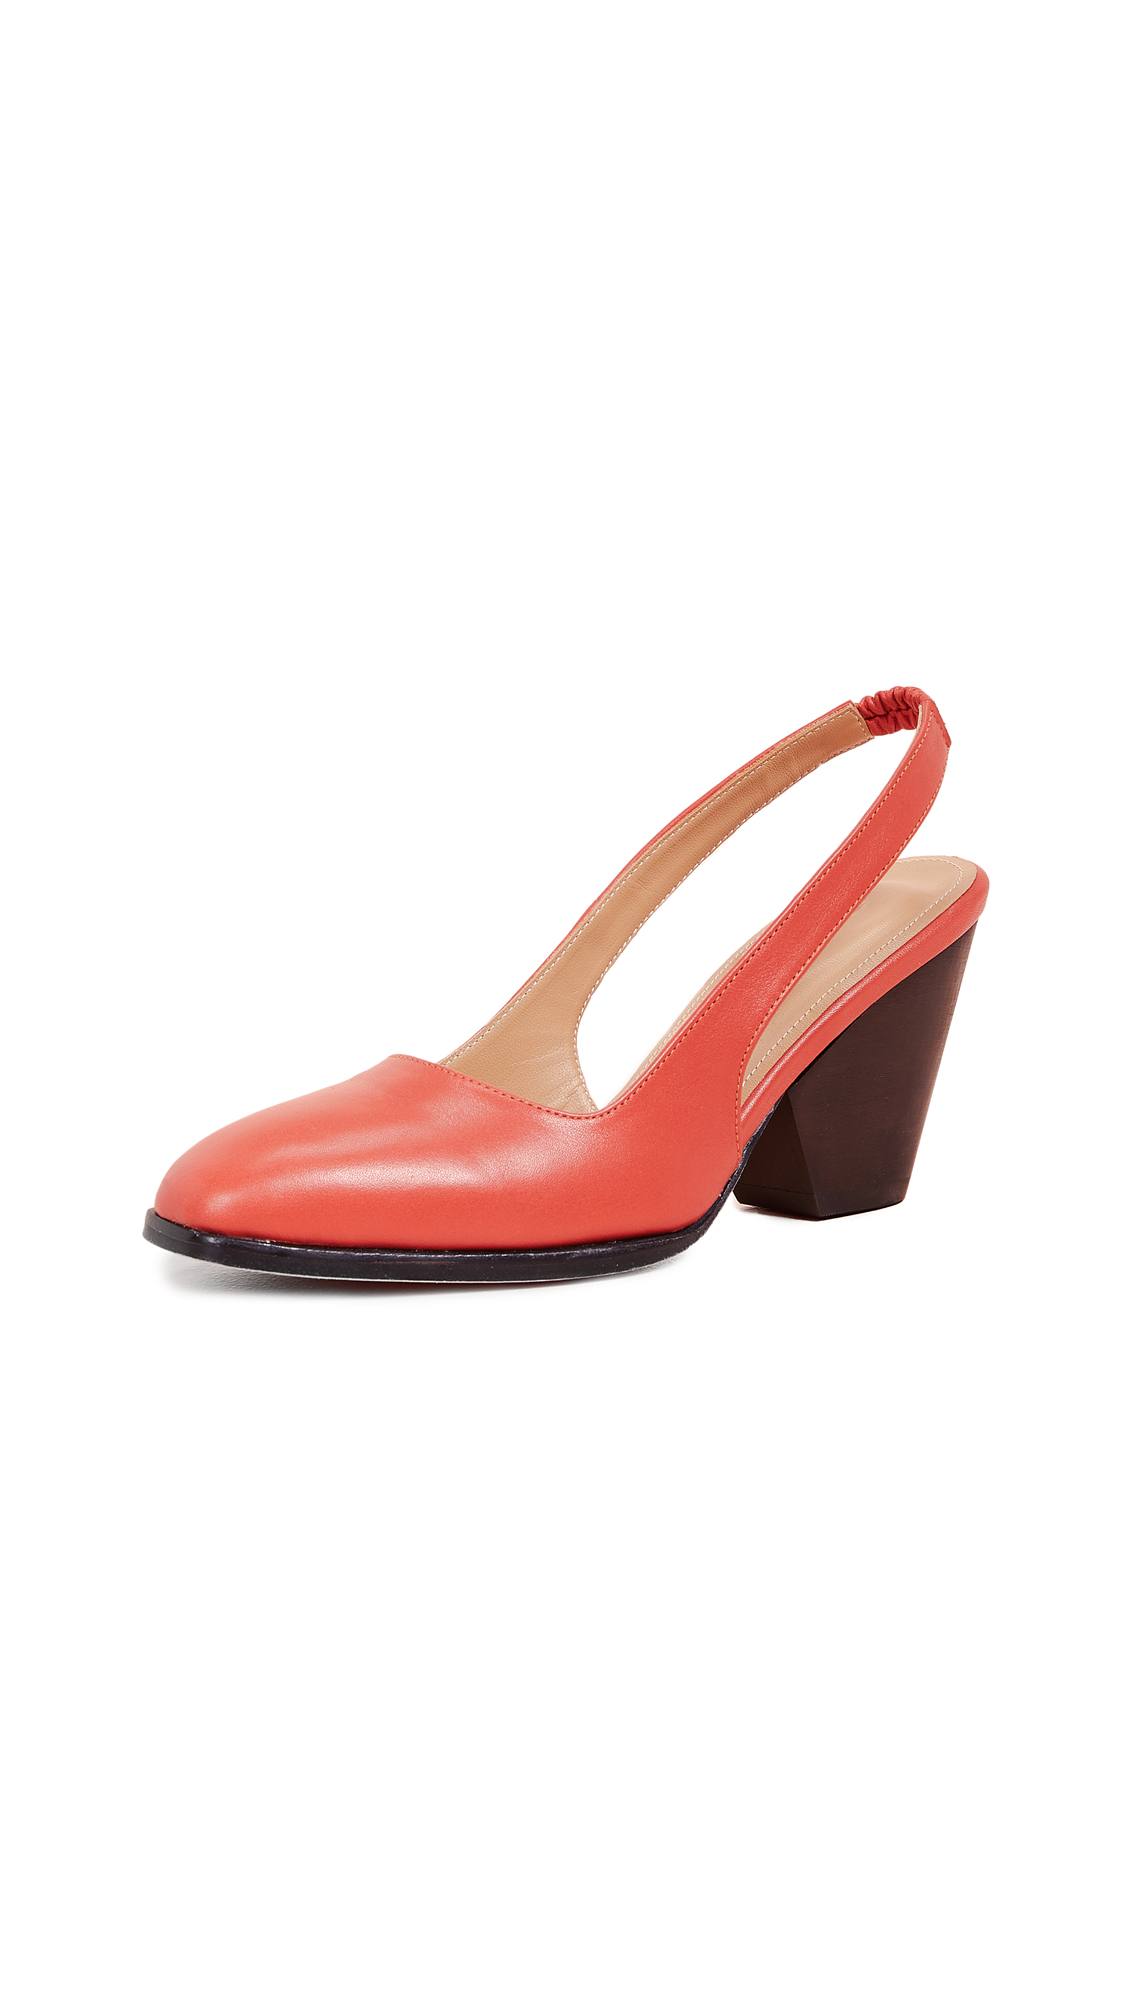 THE PALATINES Imago Slingback Pumps in Pomegranate